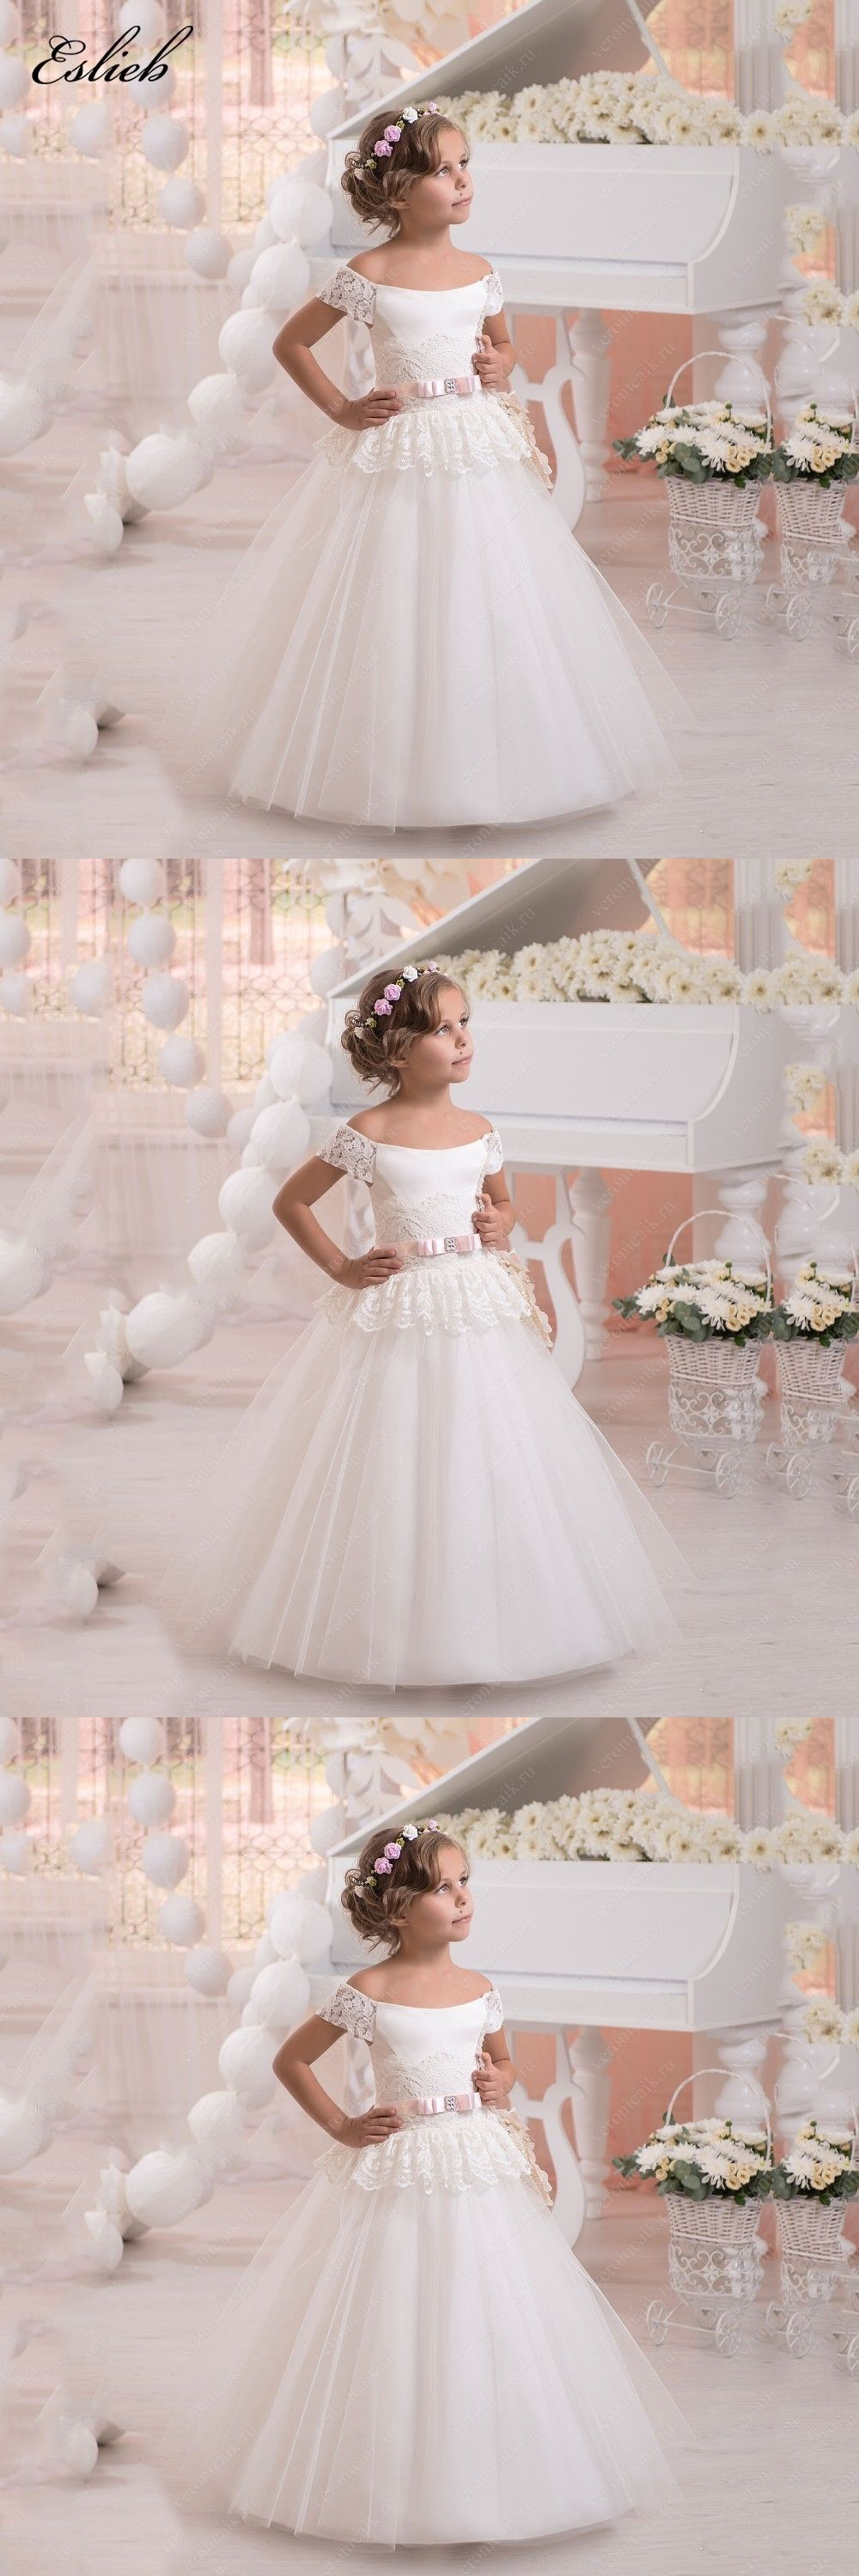 Stunning tulle ball gown holy communion dresses lace up shoulderless